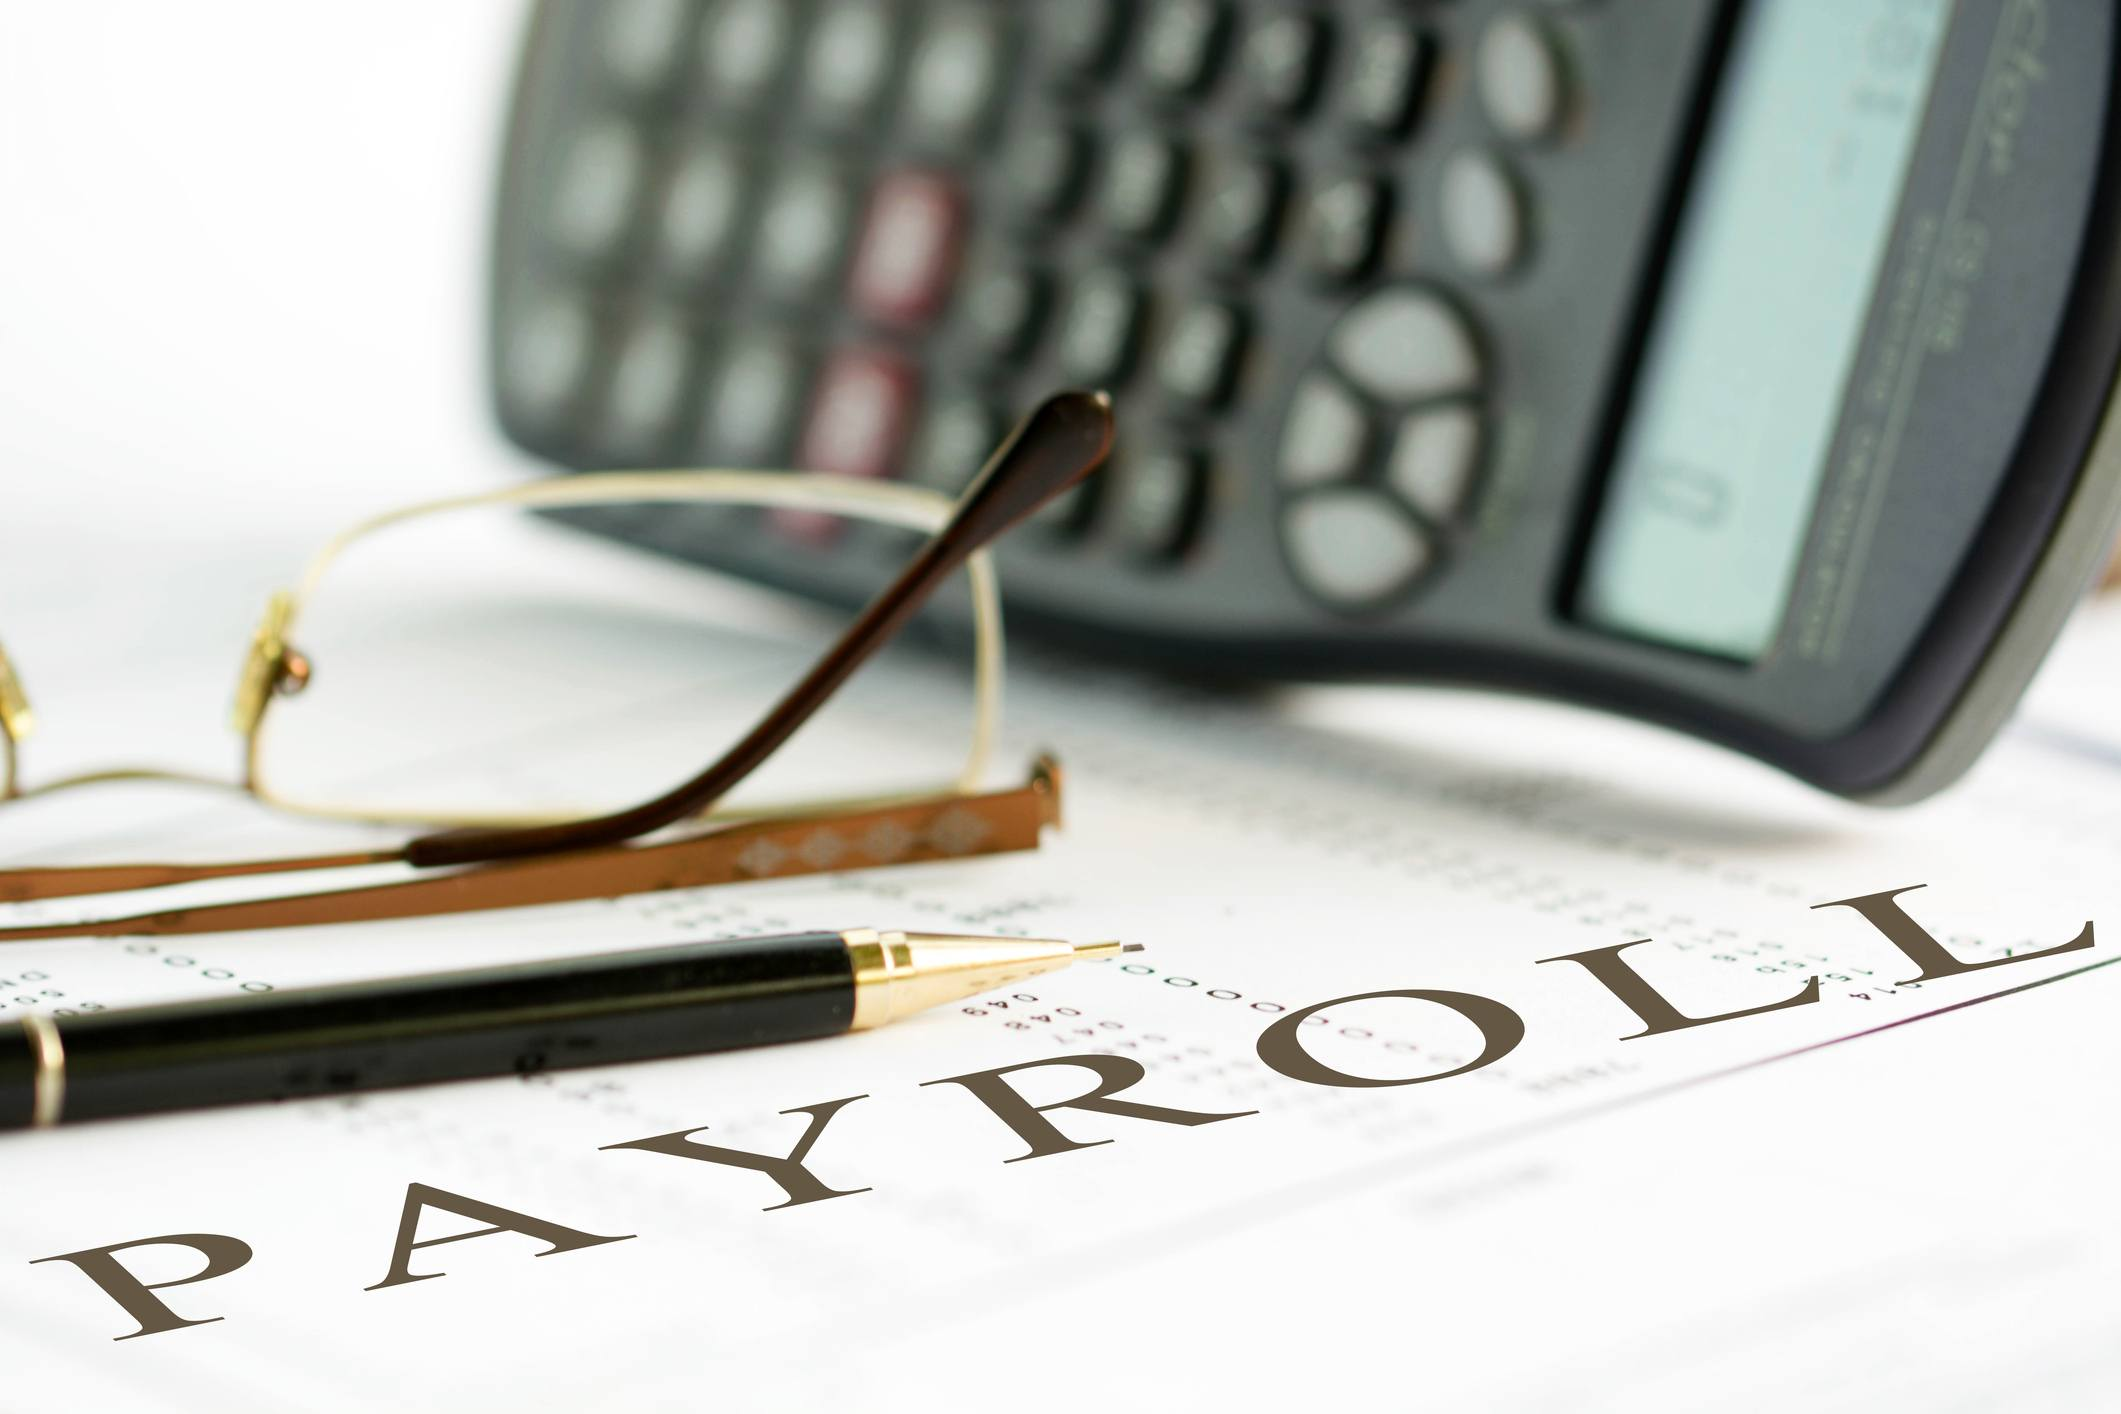 Pen, glasses, and a calculator sitting on top of payroll documents